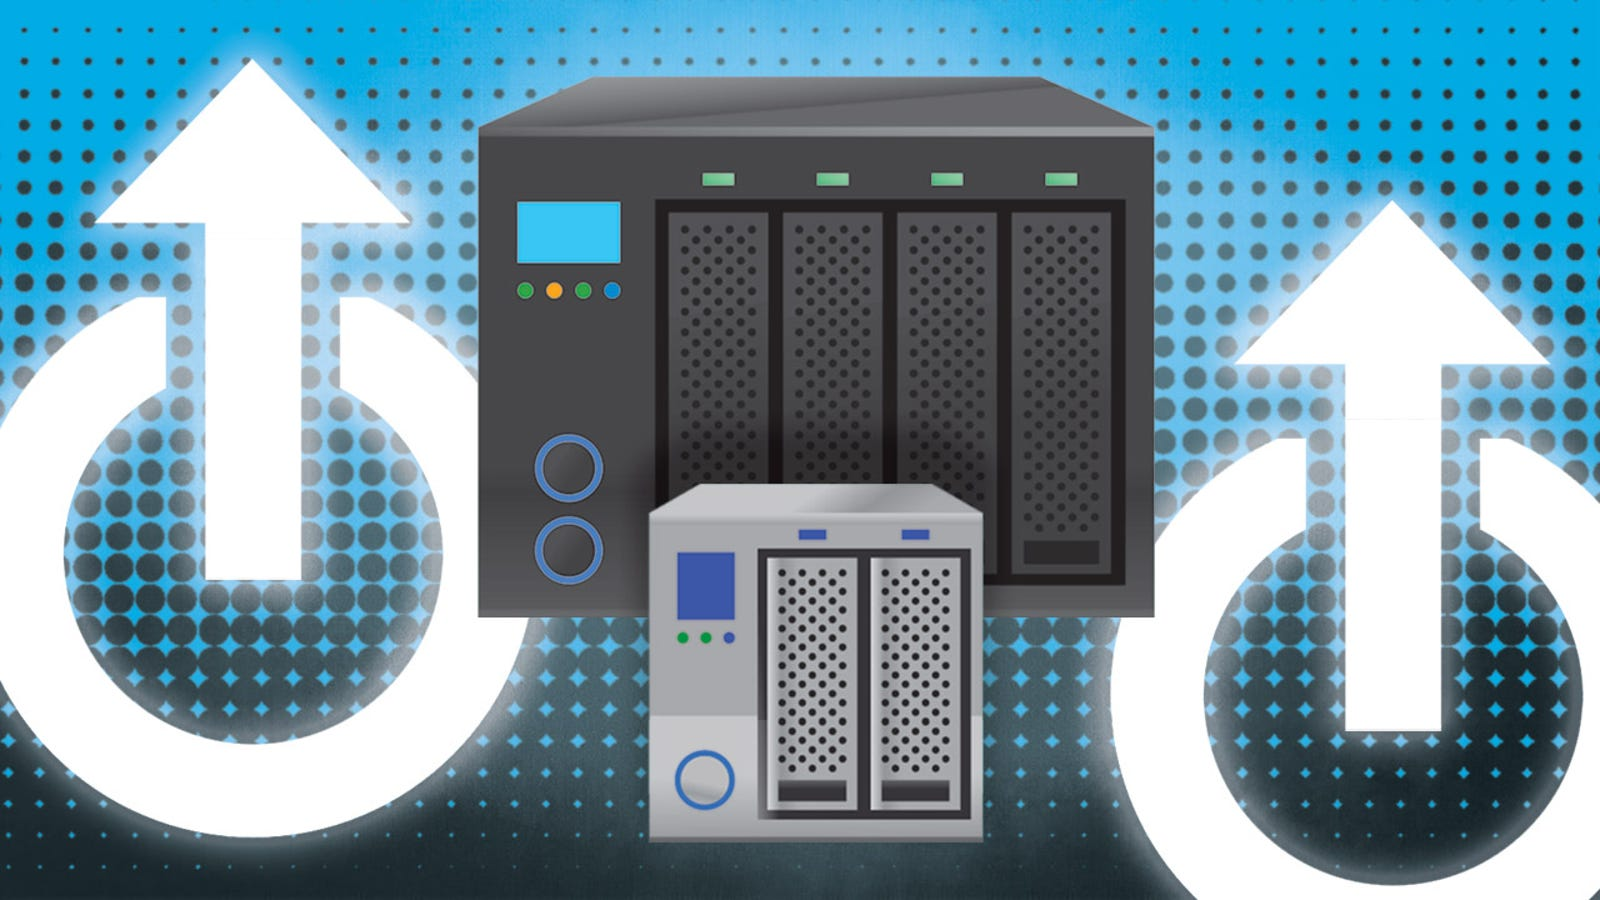 How to Migrate From an Old NAS to a New One Overnight with rsync